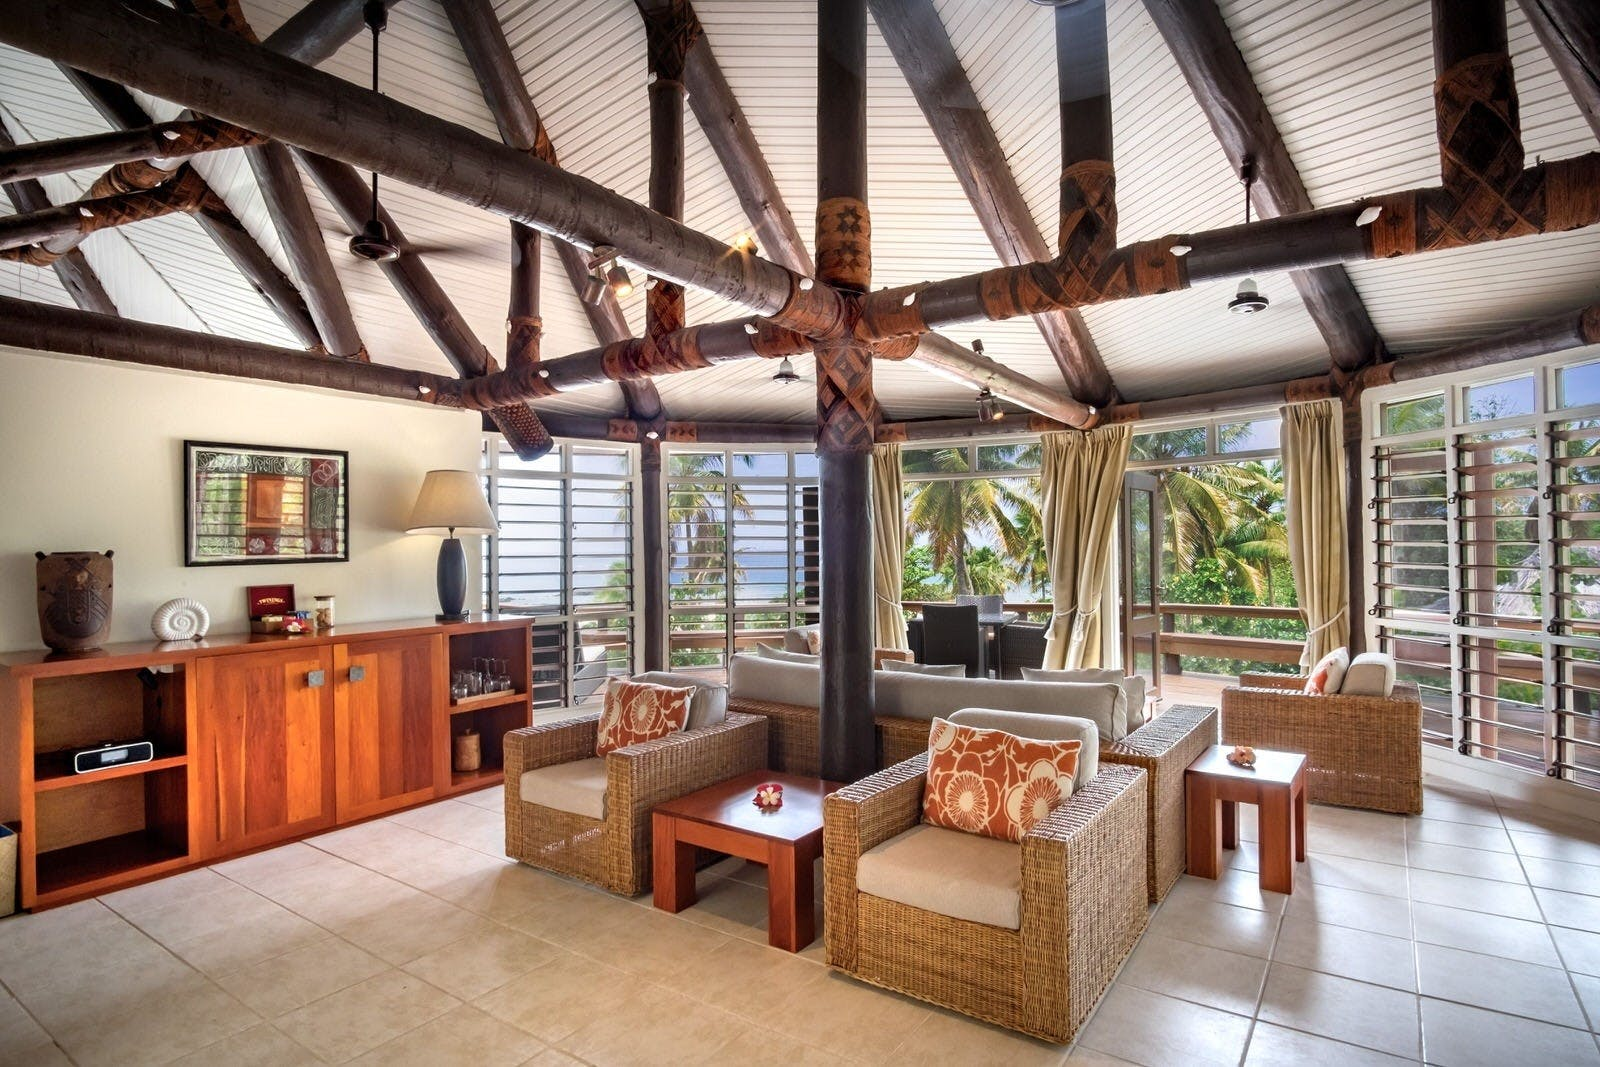 Two Bedroom at Yasawa Island Resort and Spa, Fiji